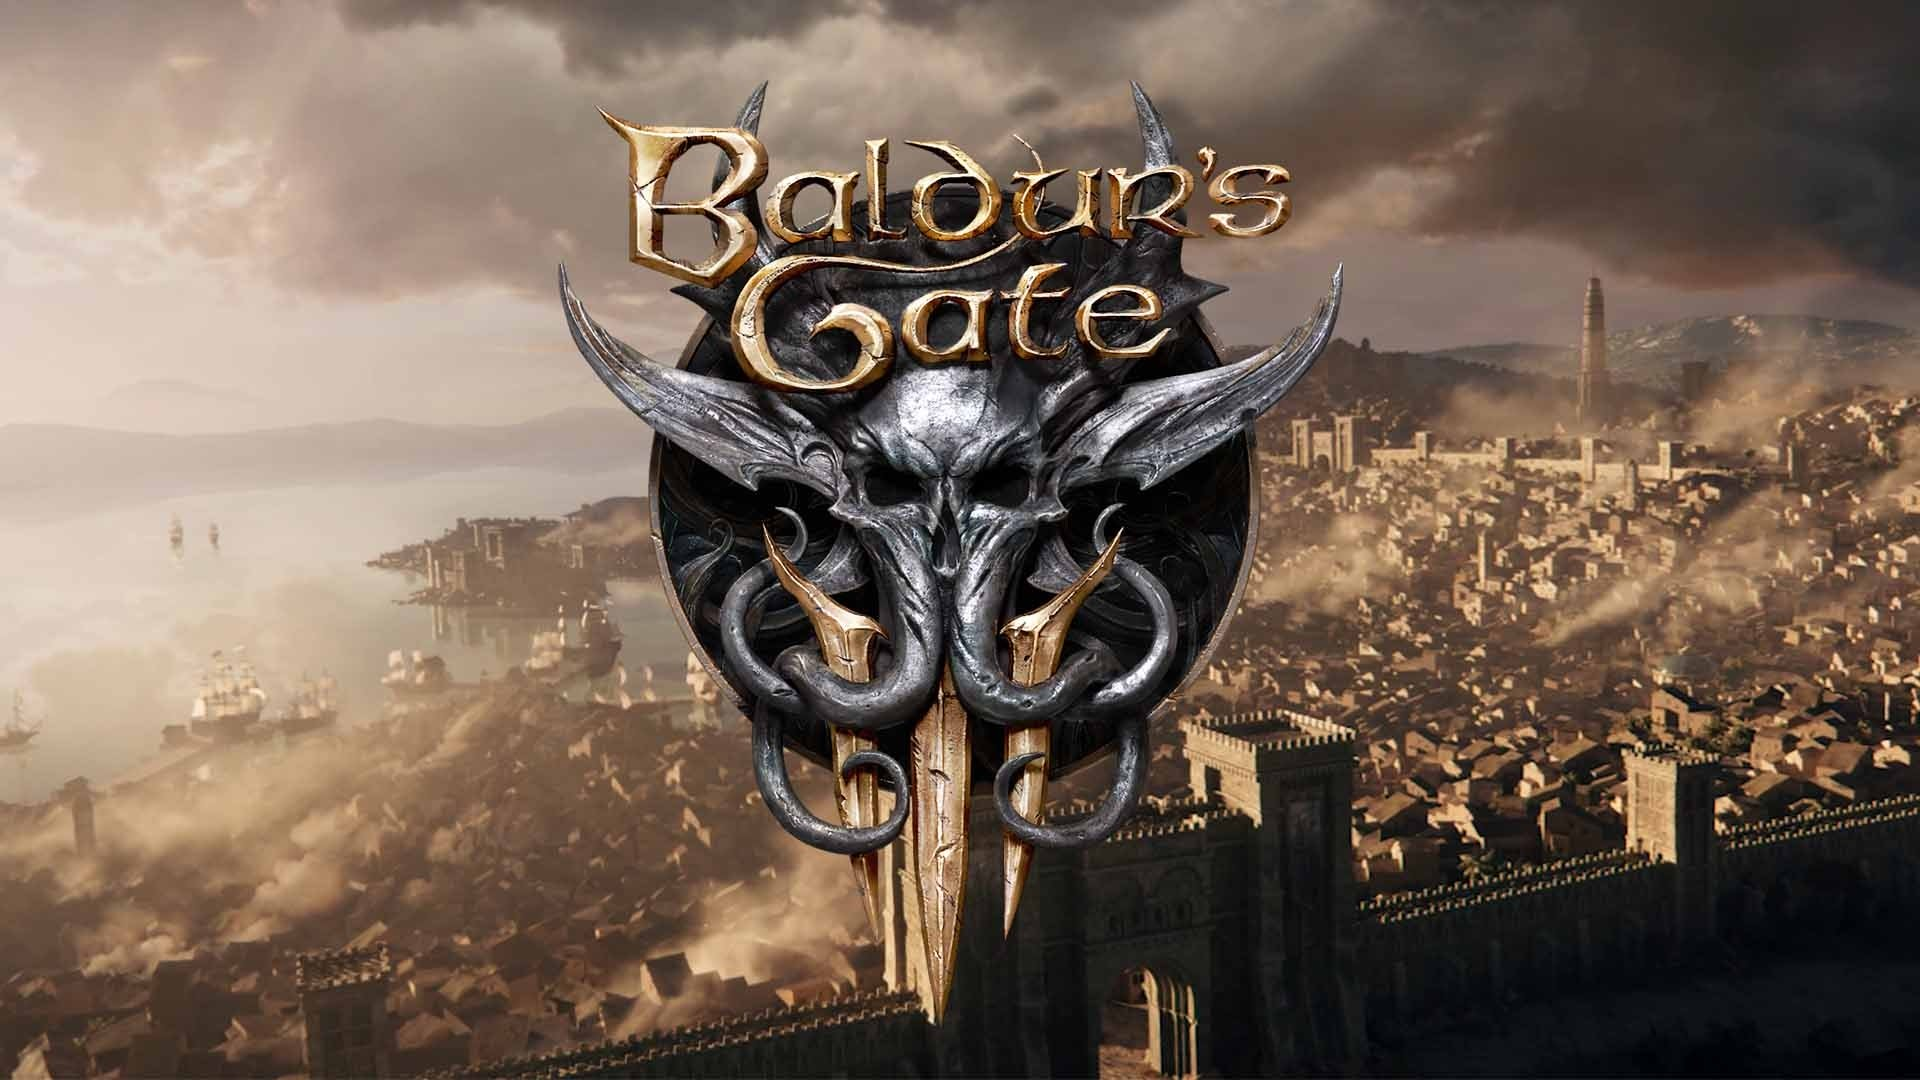 Baldurs Gate 3 – Early Access